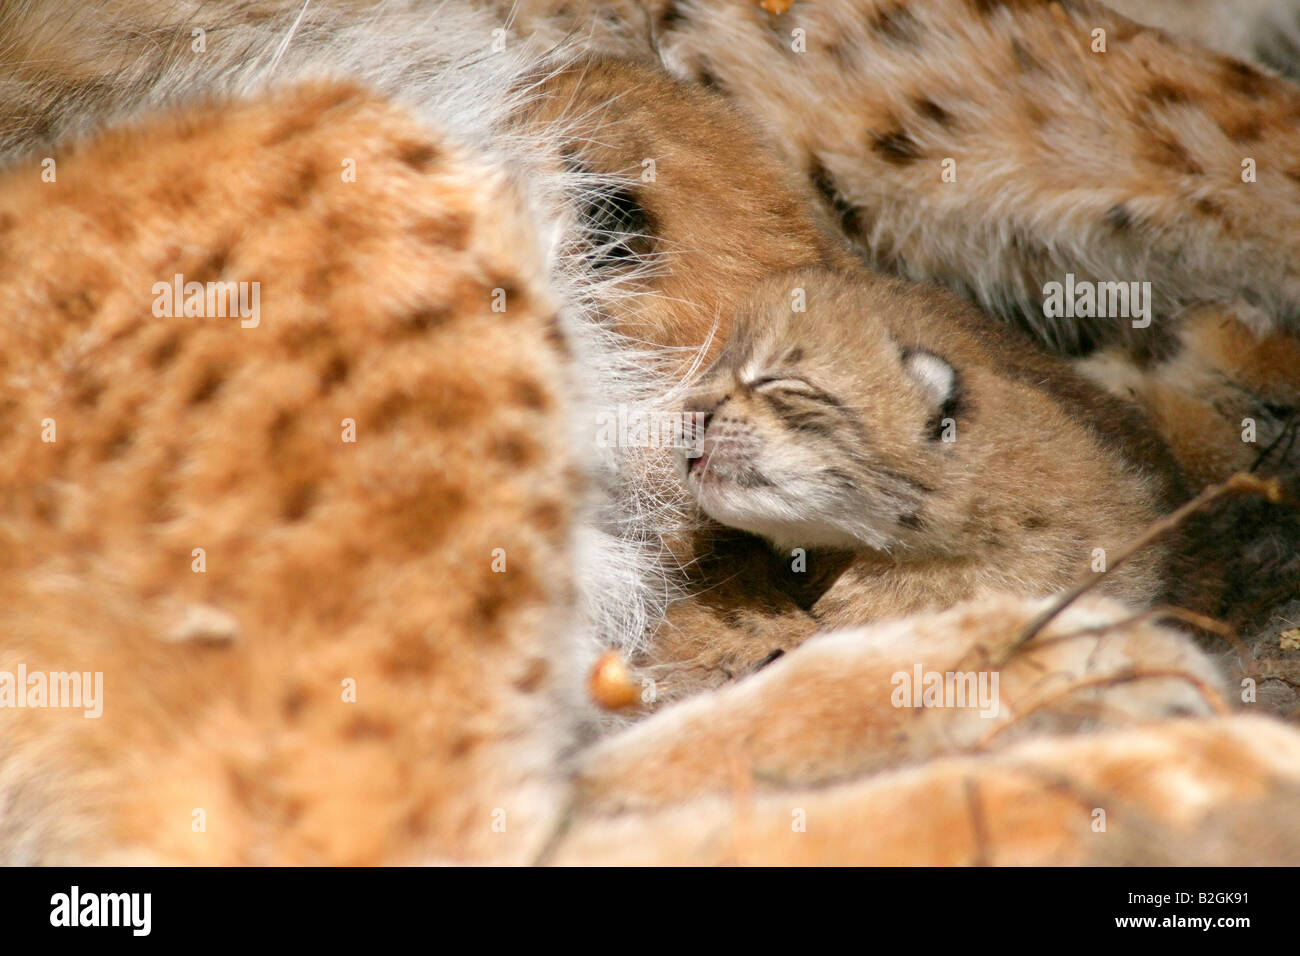 eurasian lynx dam catkin mother motherly love close up Lynx lynx cuddling bavaria germany - Stock Image